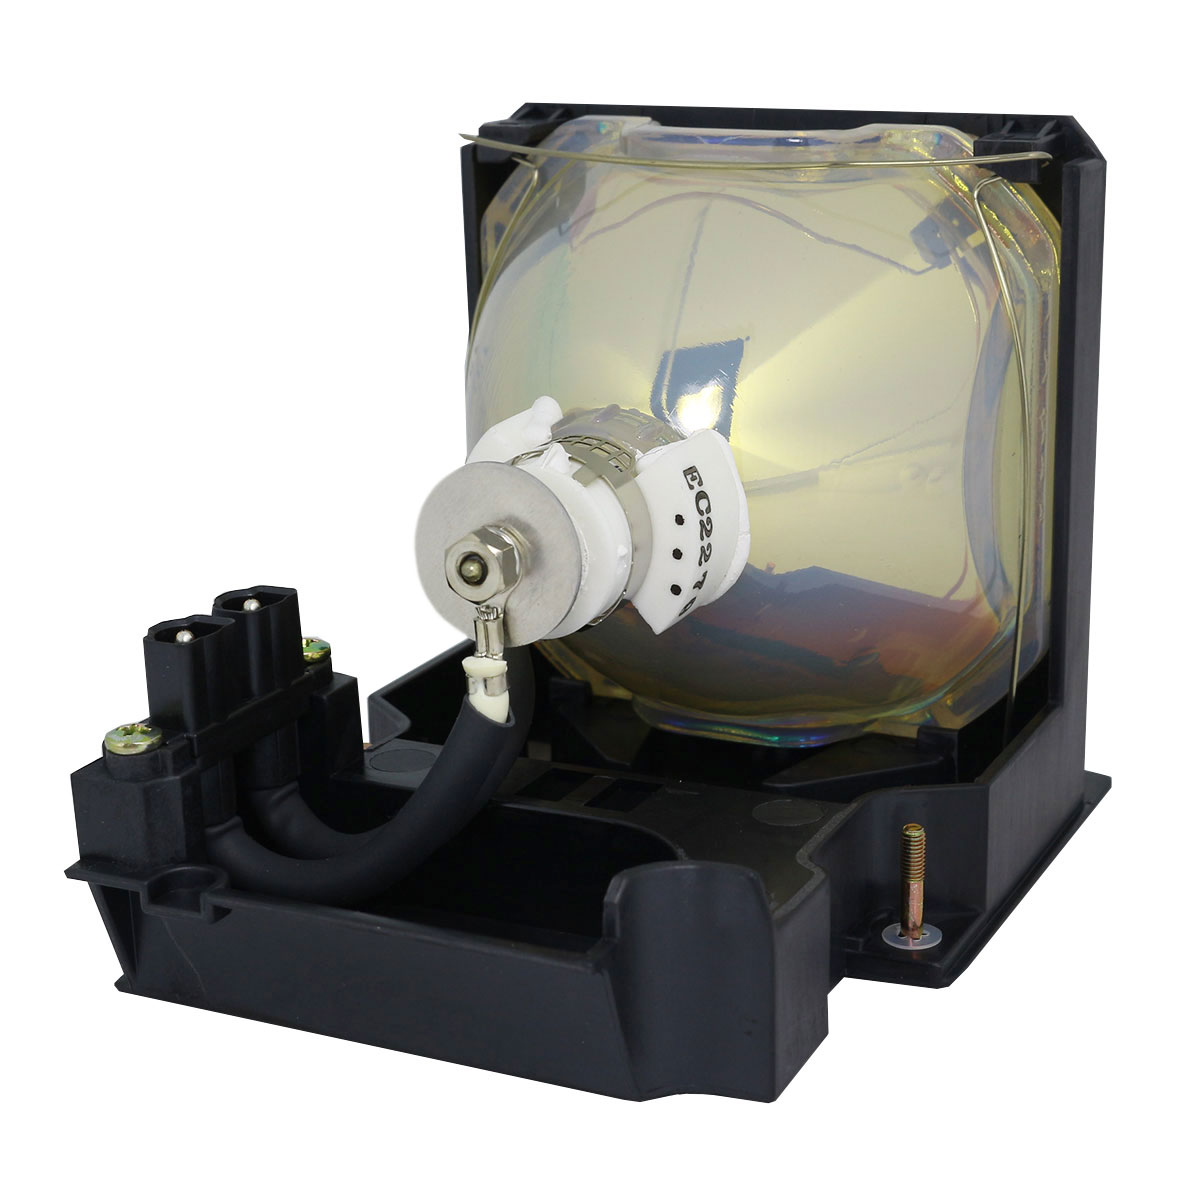 Original Ushio Projector Lamp Replacement for Yokogawa VLT-X400LP (Bulb Only) - image 2 of 5